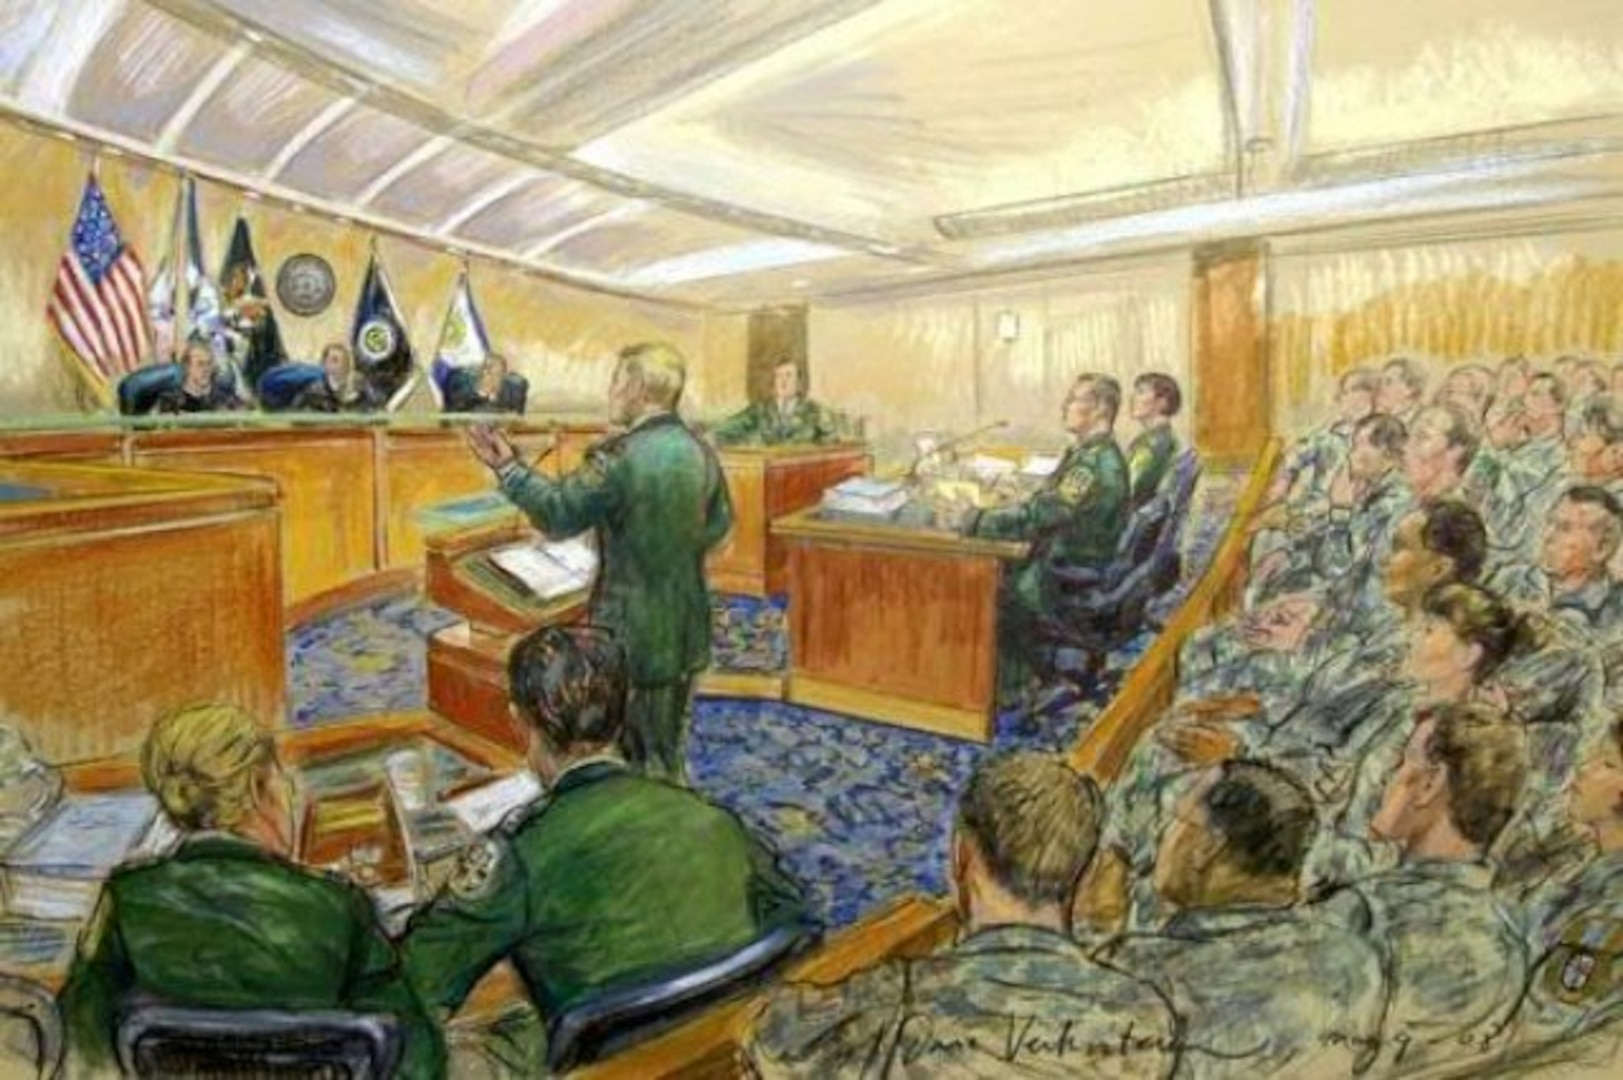 Changes to Uniform Code of Military Justice Take Effect This Week